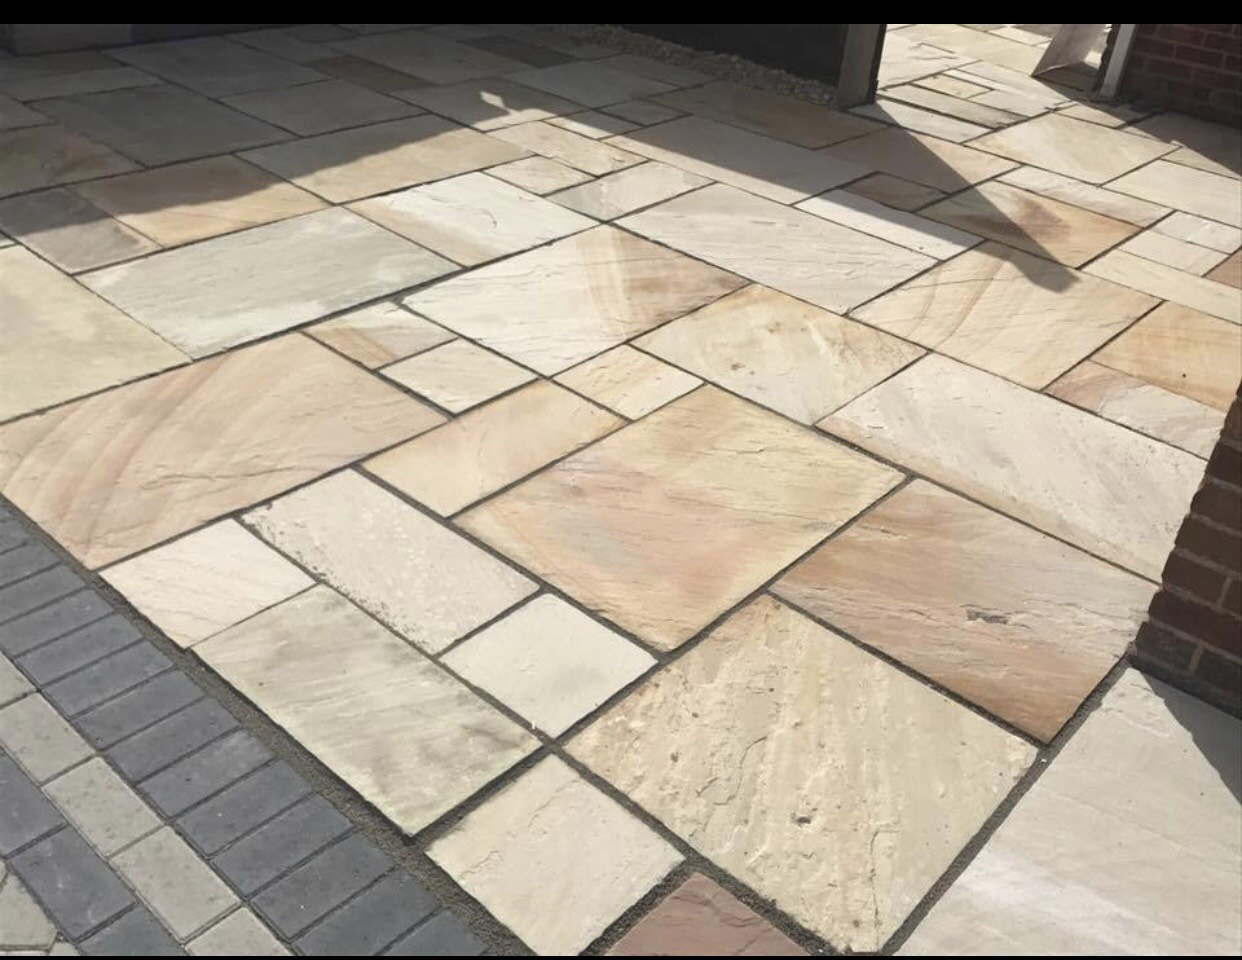 more work for block paving in bath - the image shows a block paved patio